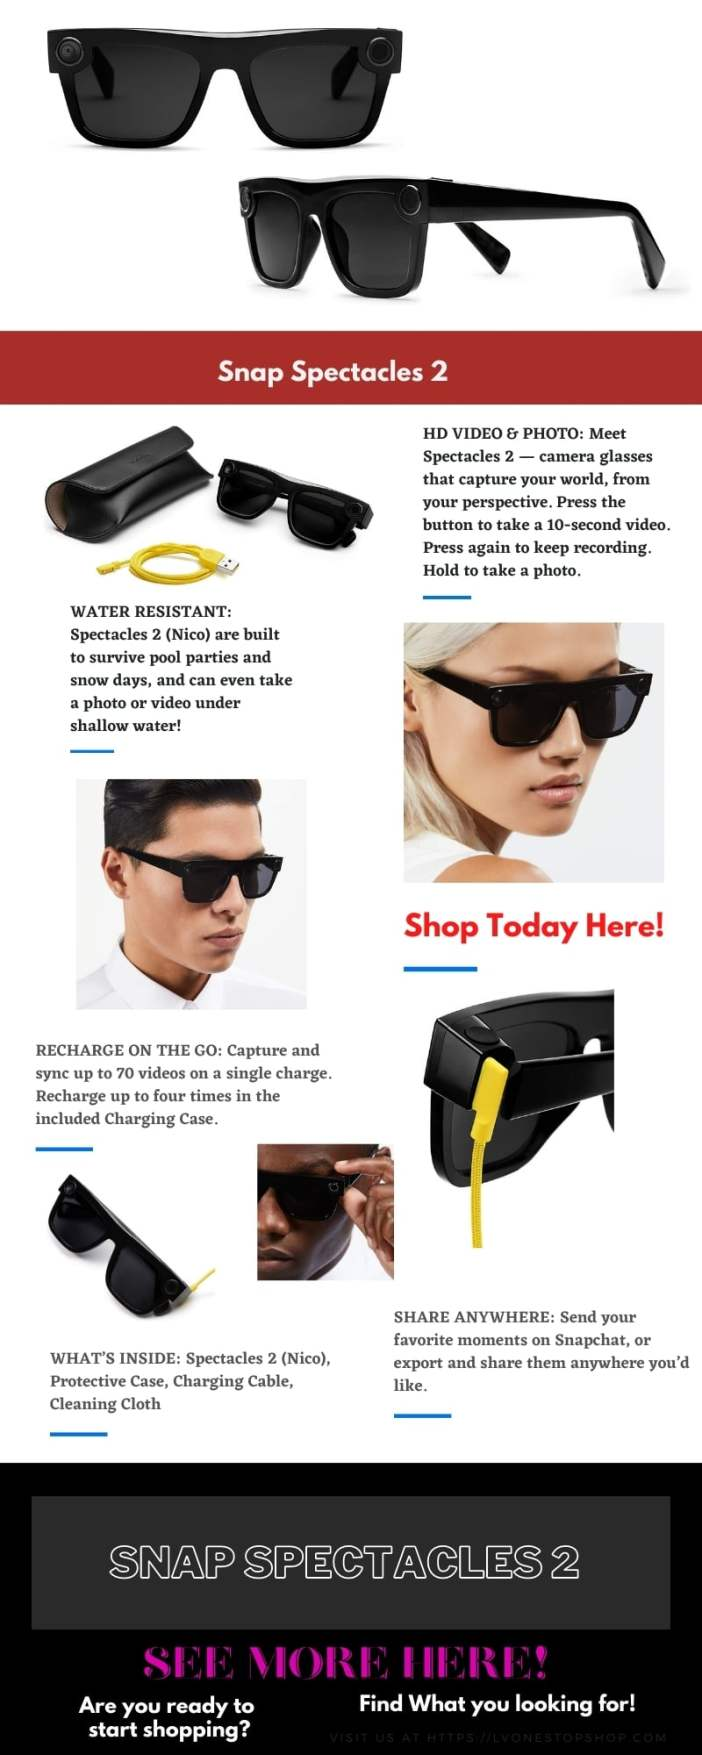 Snap Spectacles 2 review